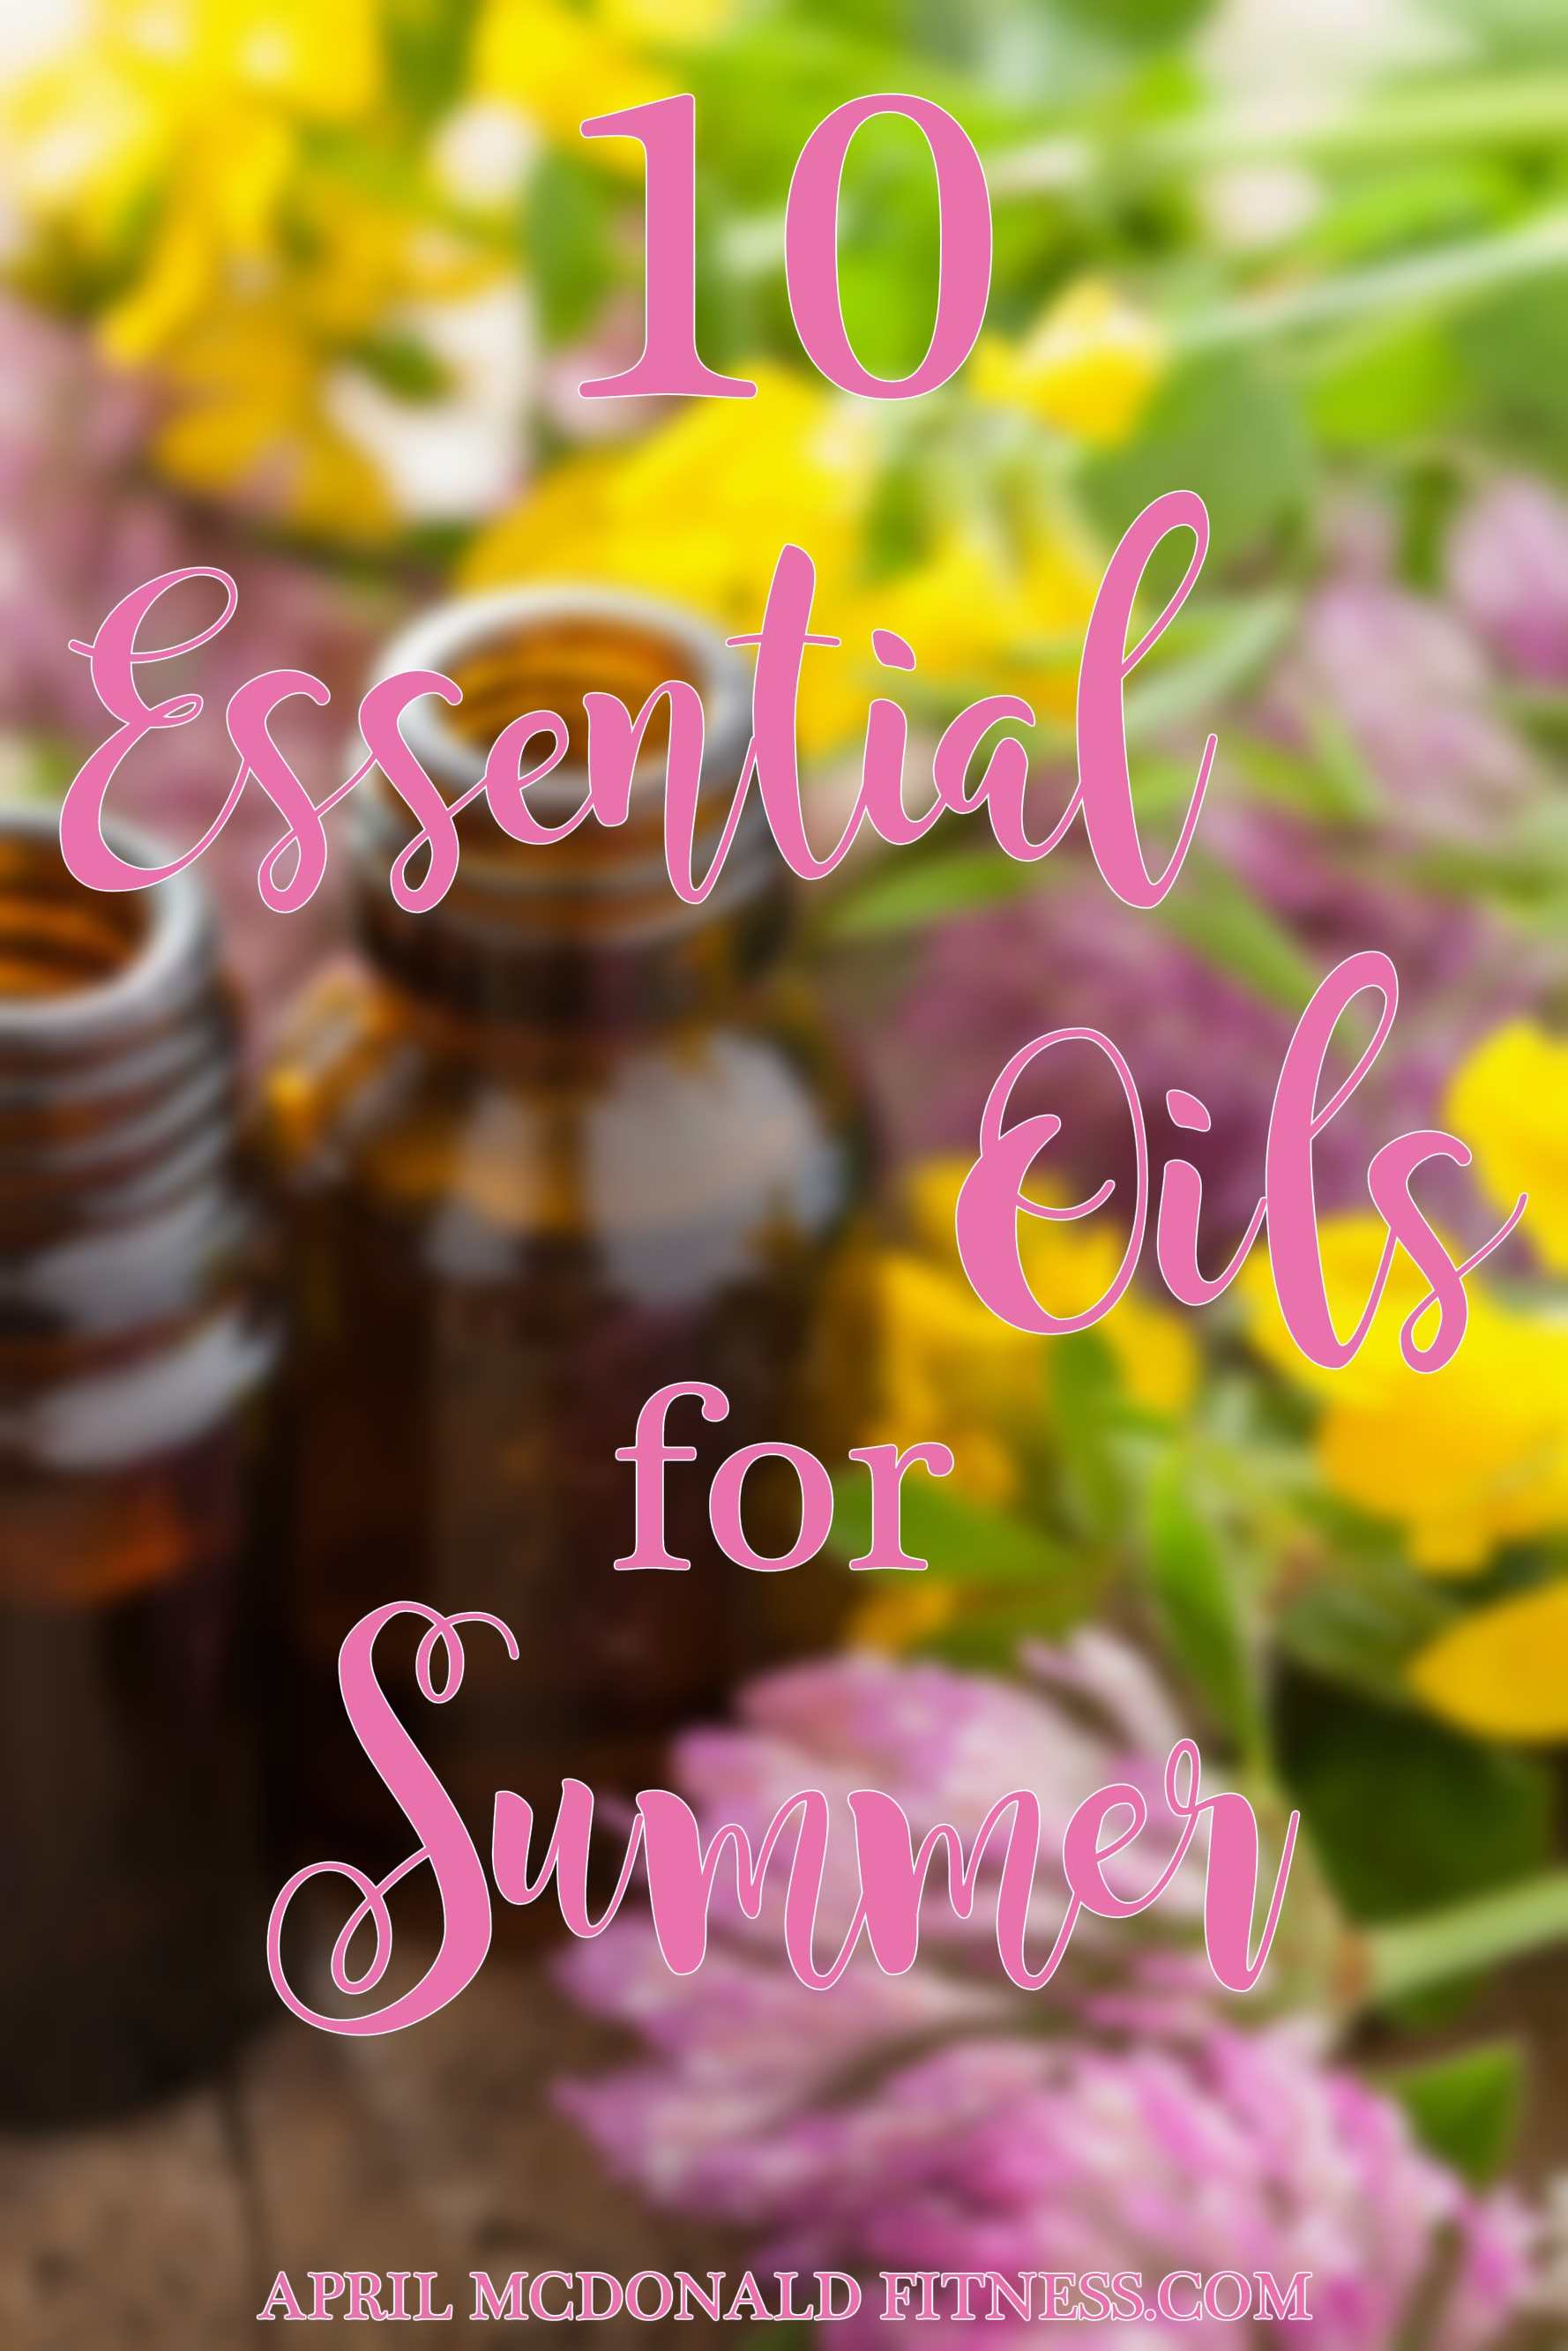 Summer can be tough. Fight back with essential oils!